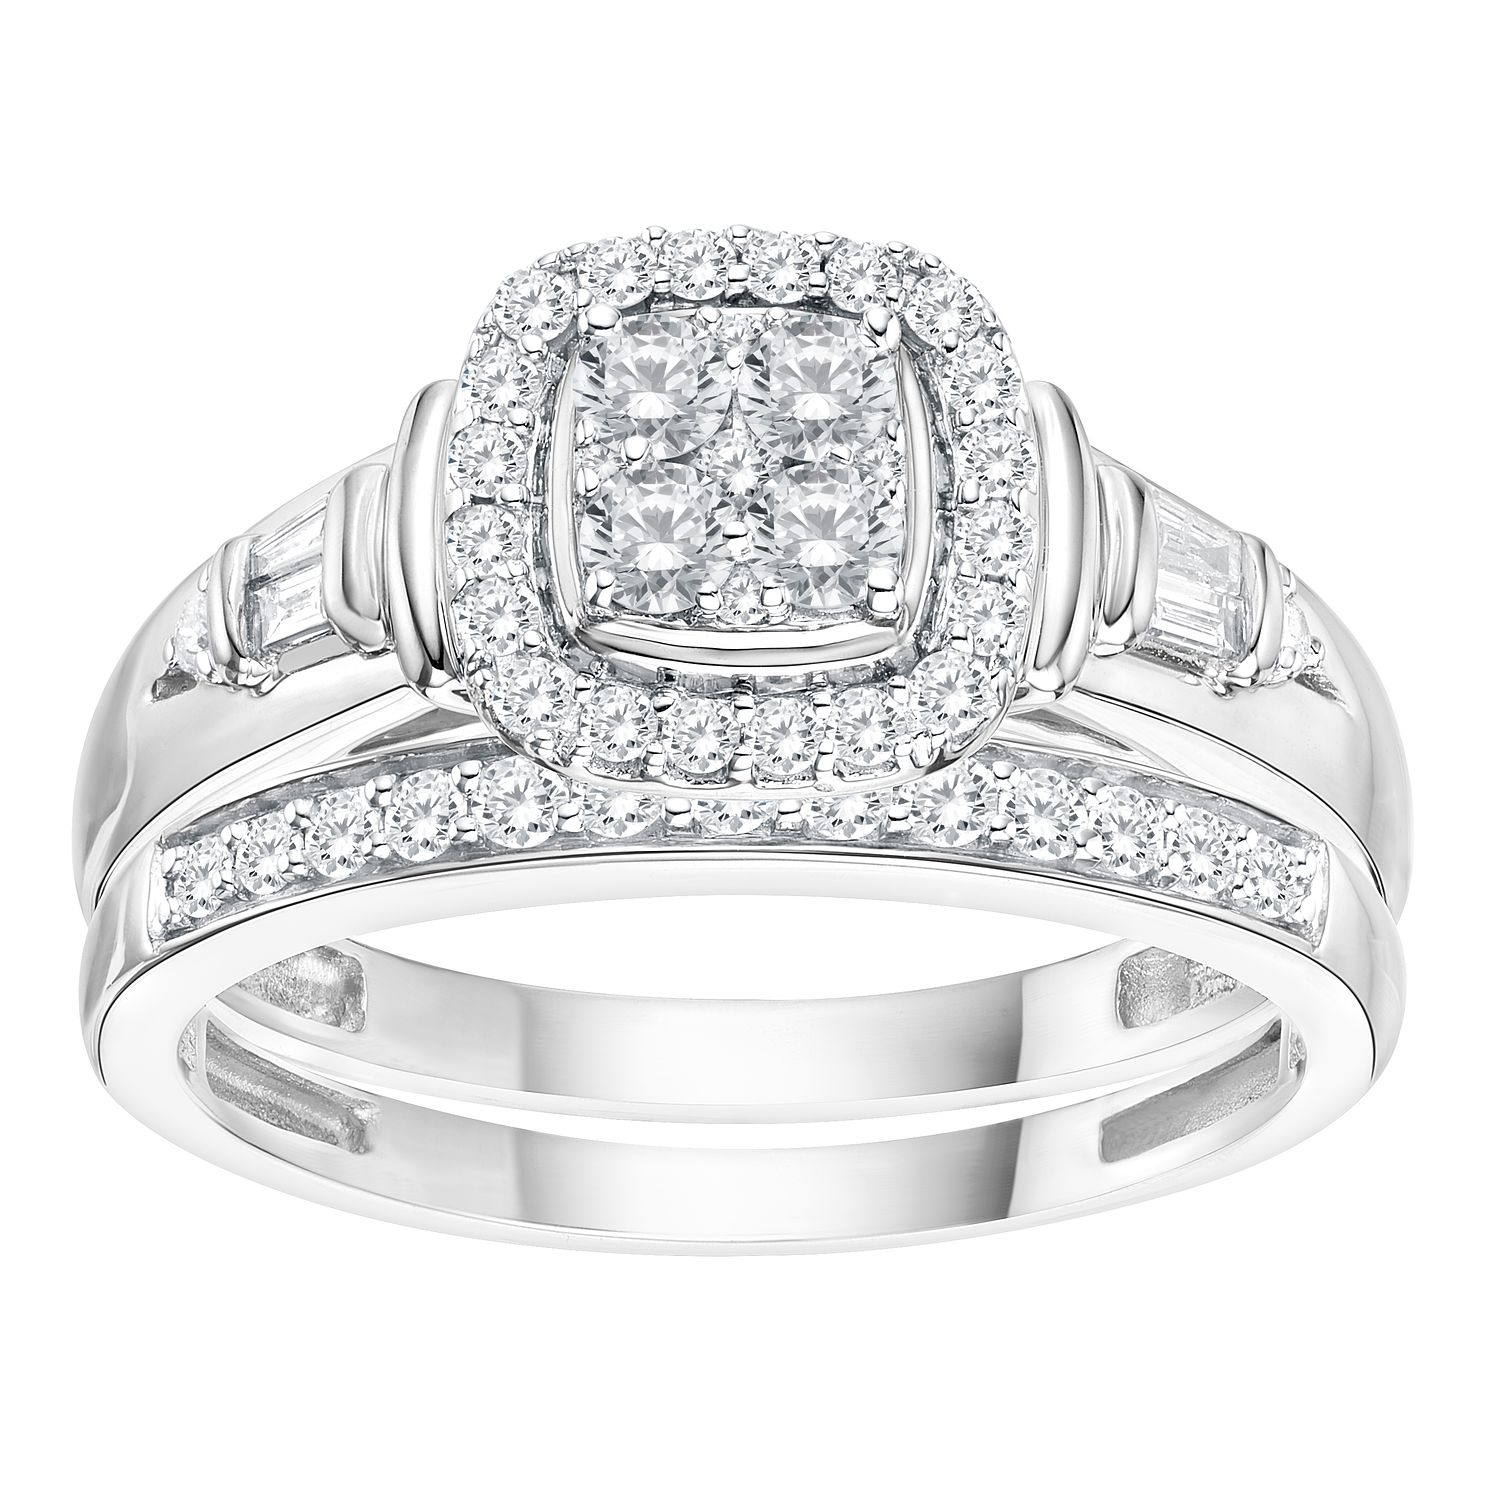 popsugar australia love diamond rings grey sex engagement dimond